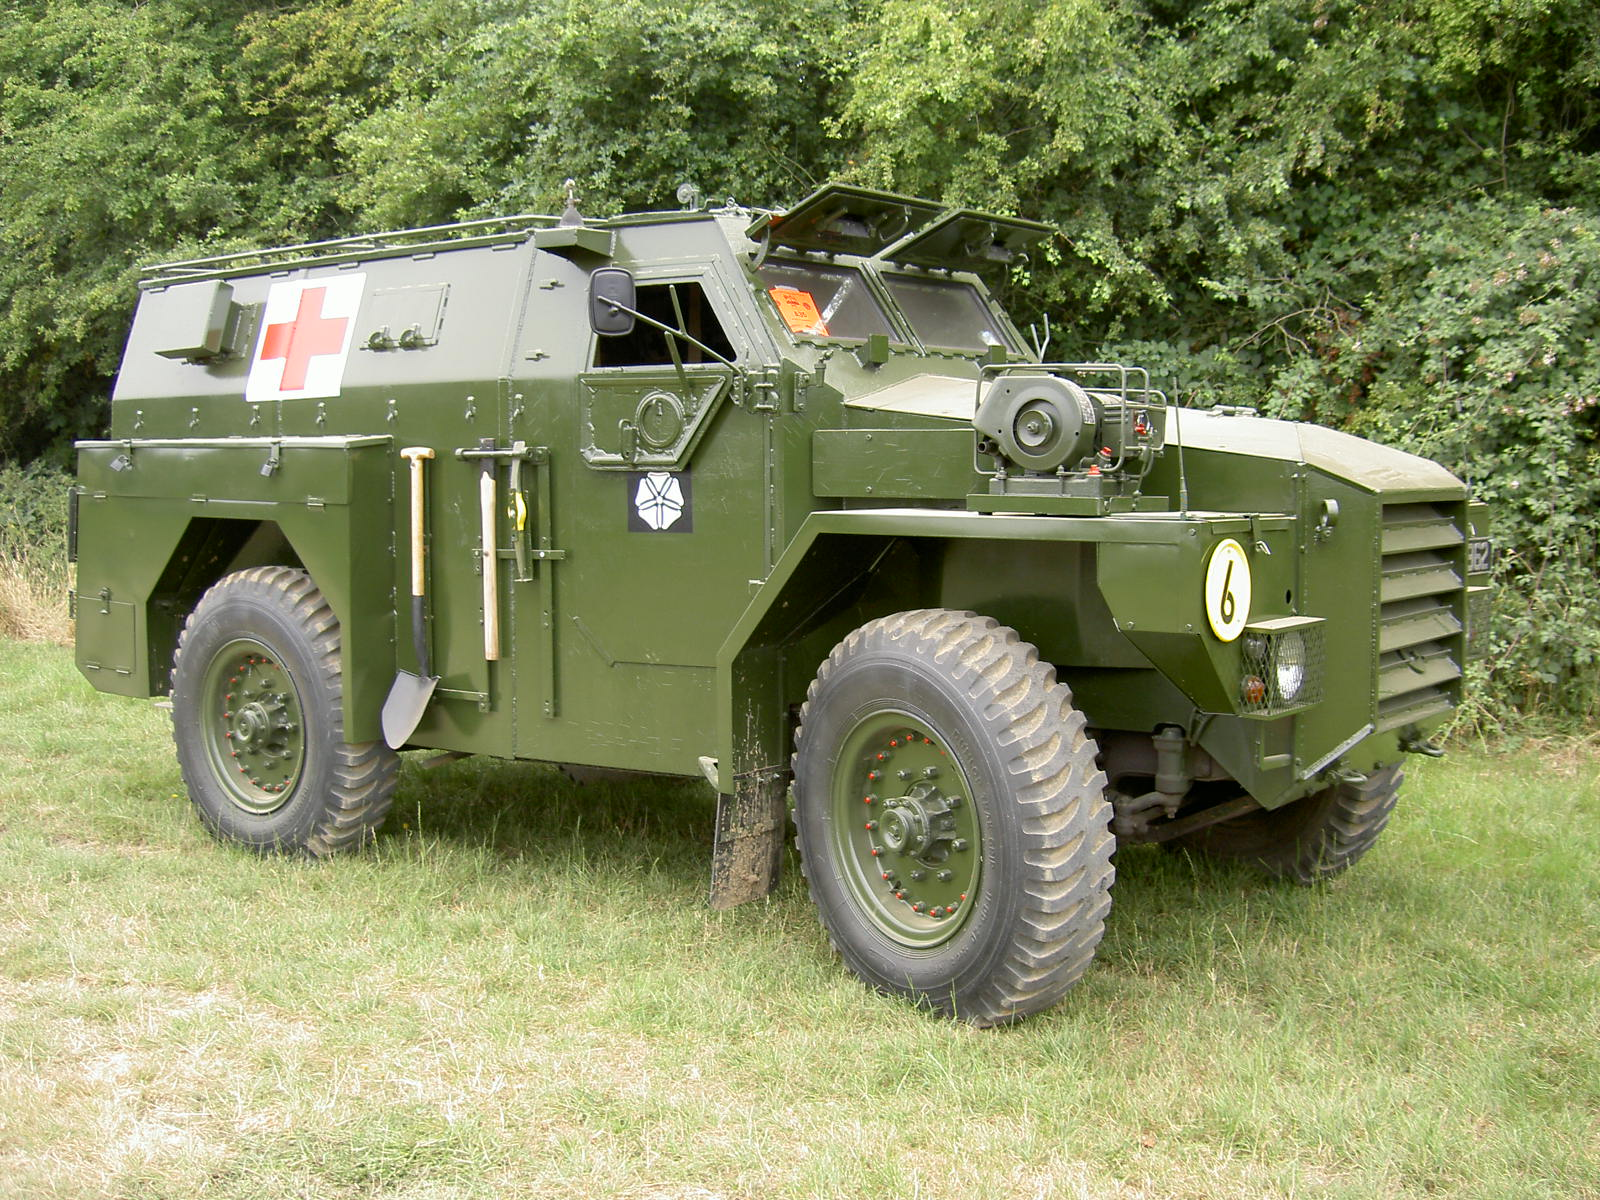 WarWheels Net-Humber Pig APC Index